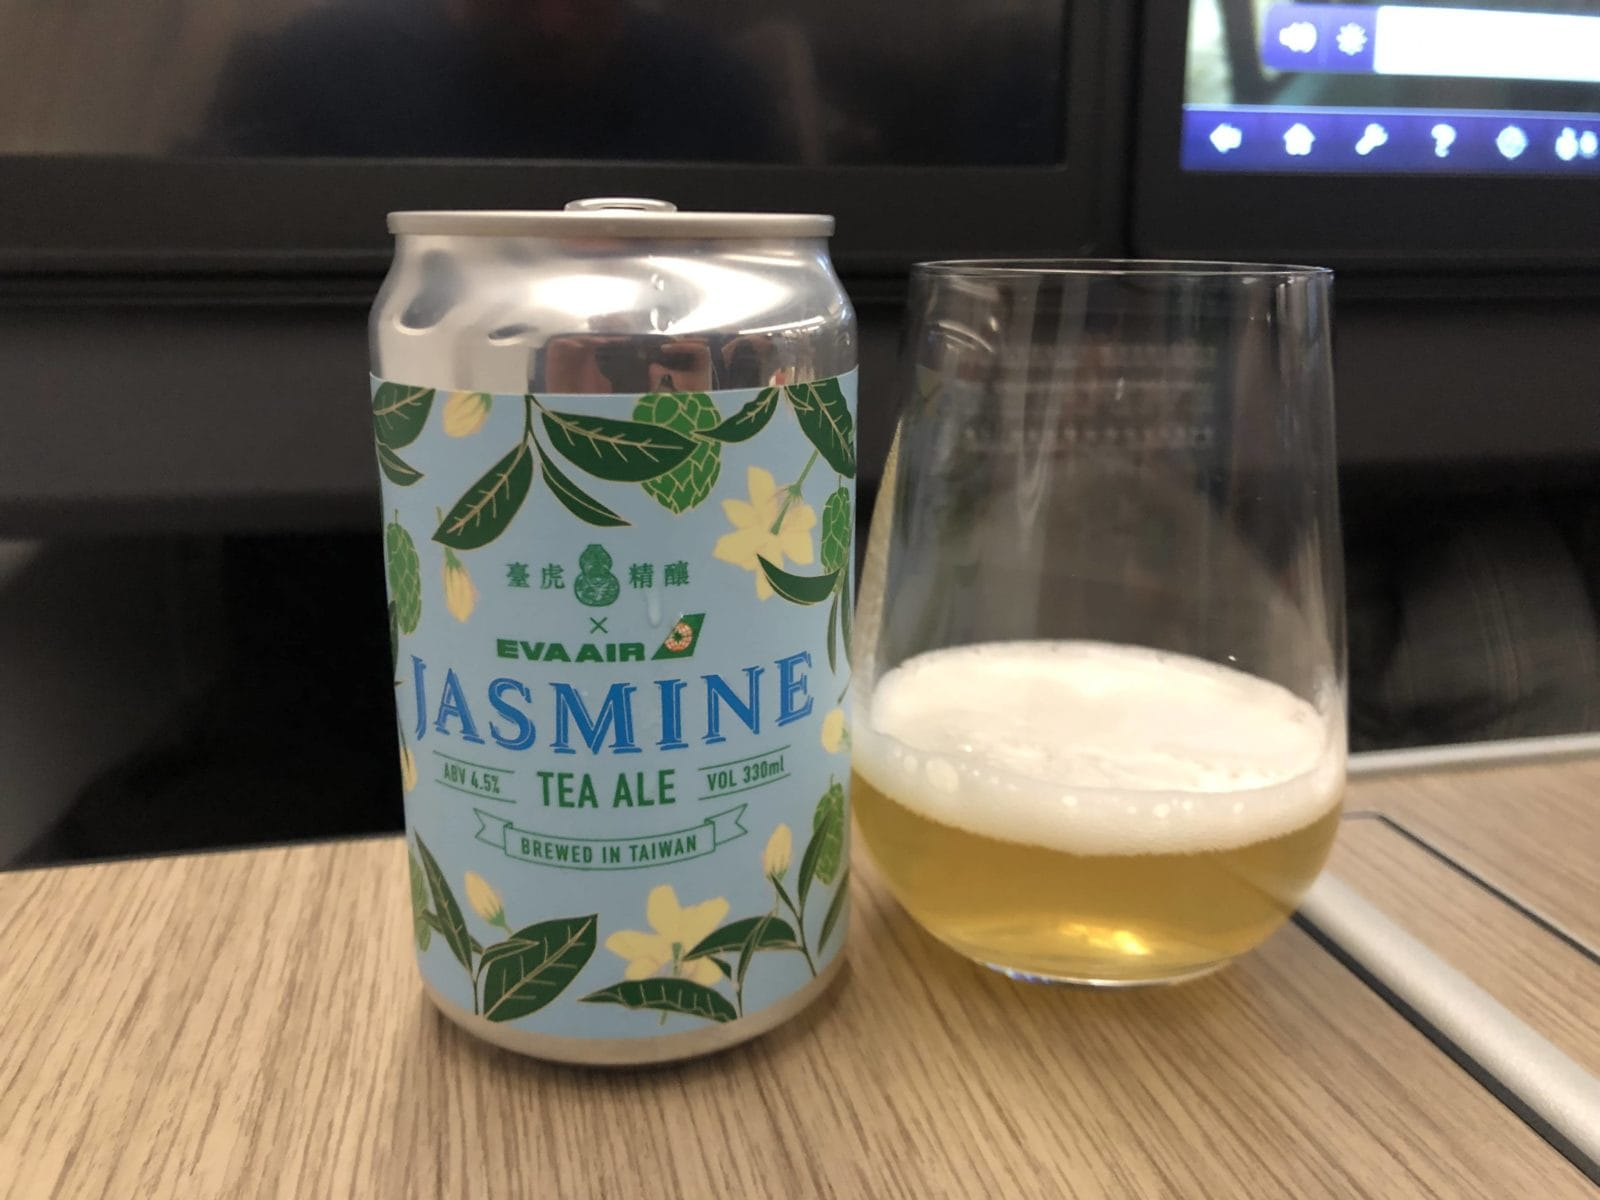 EVA Air Business Class A330-300 Jasmine Bier